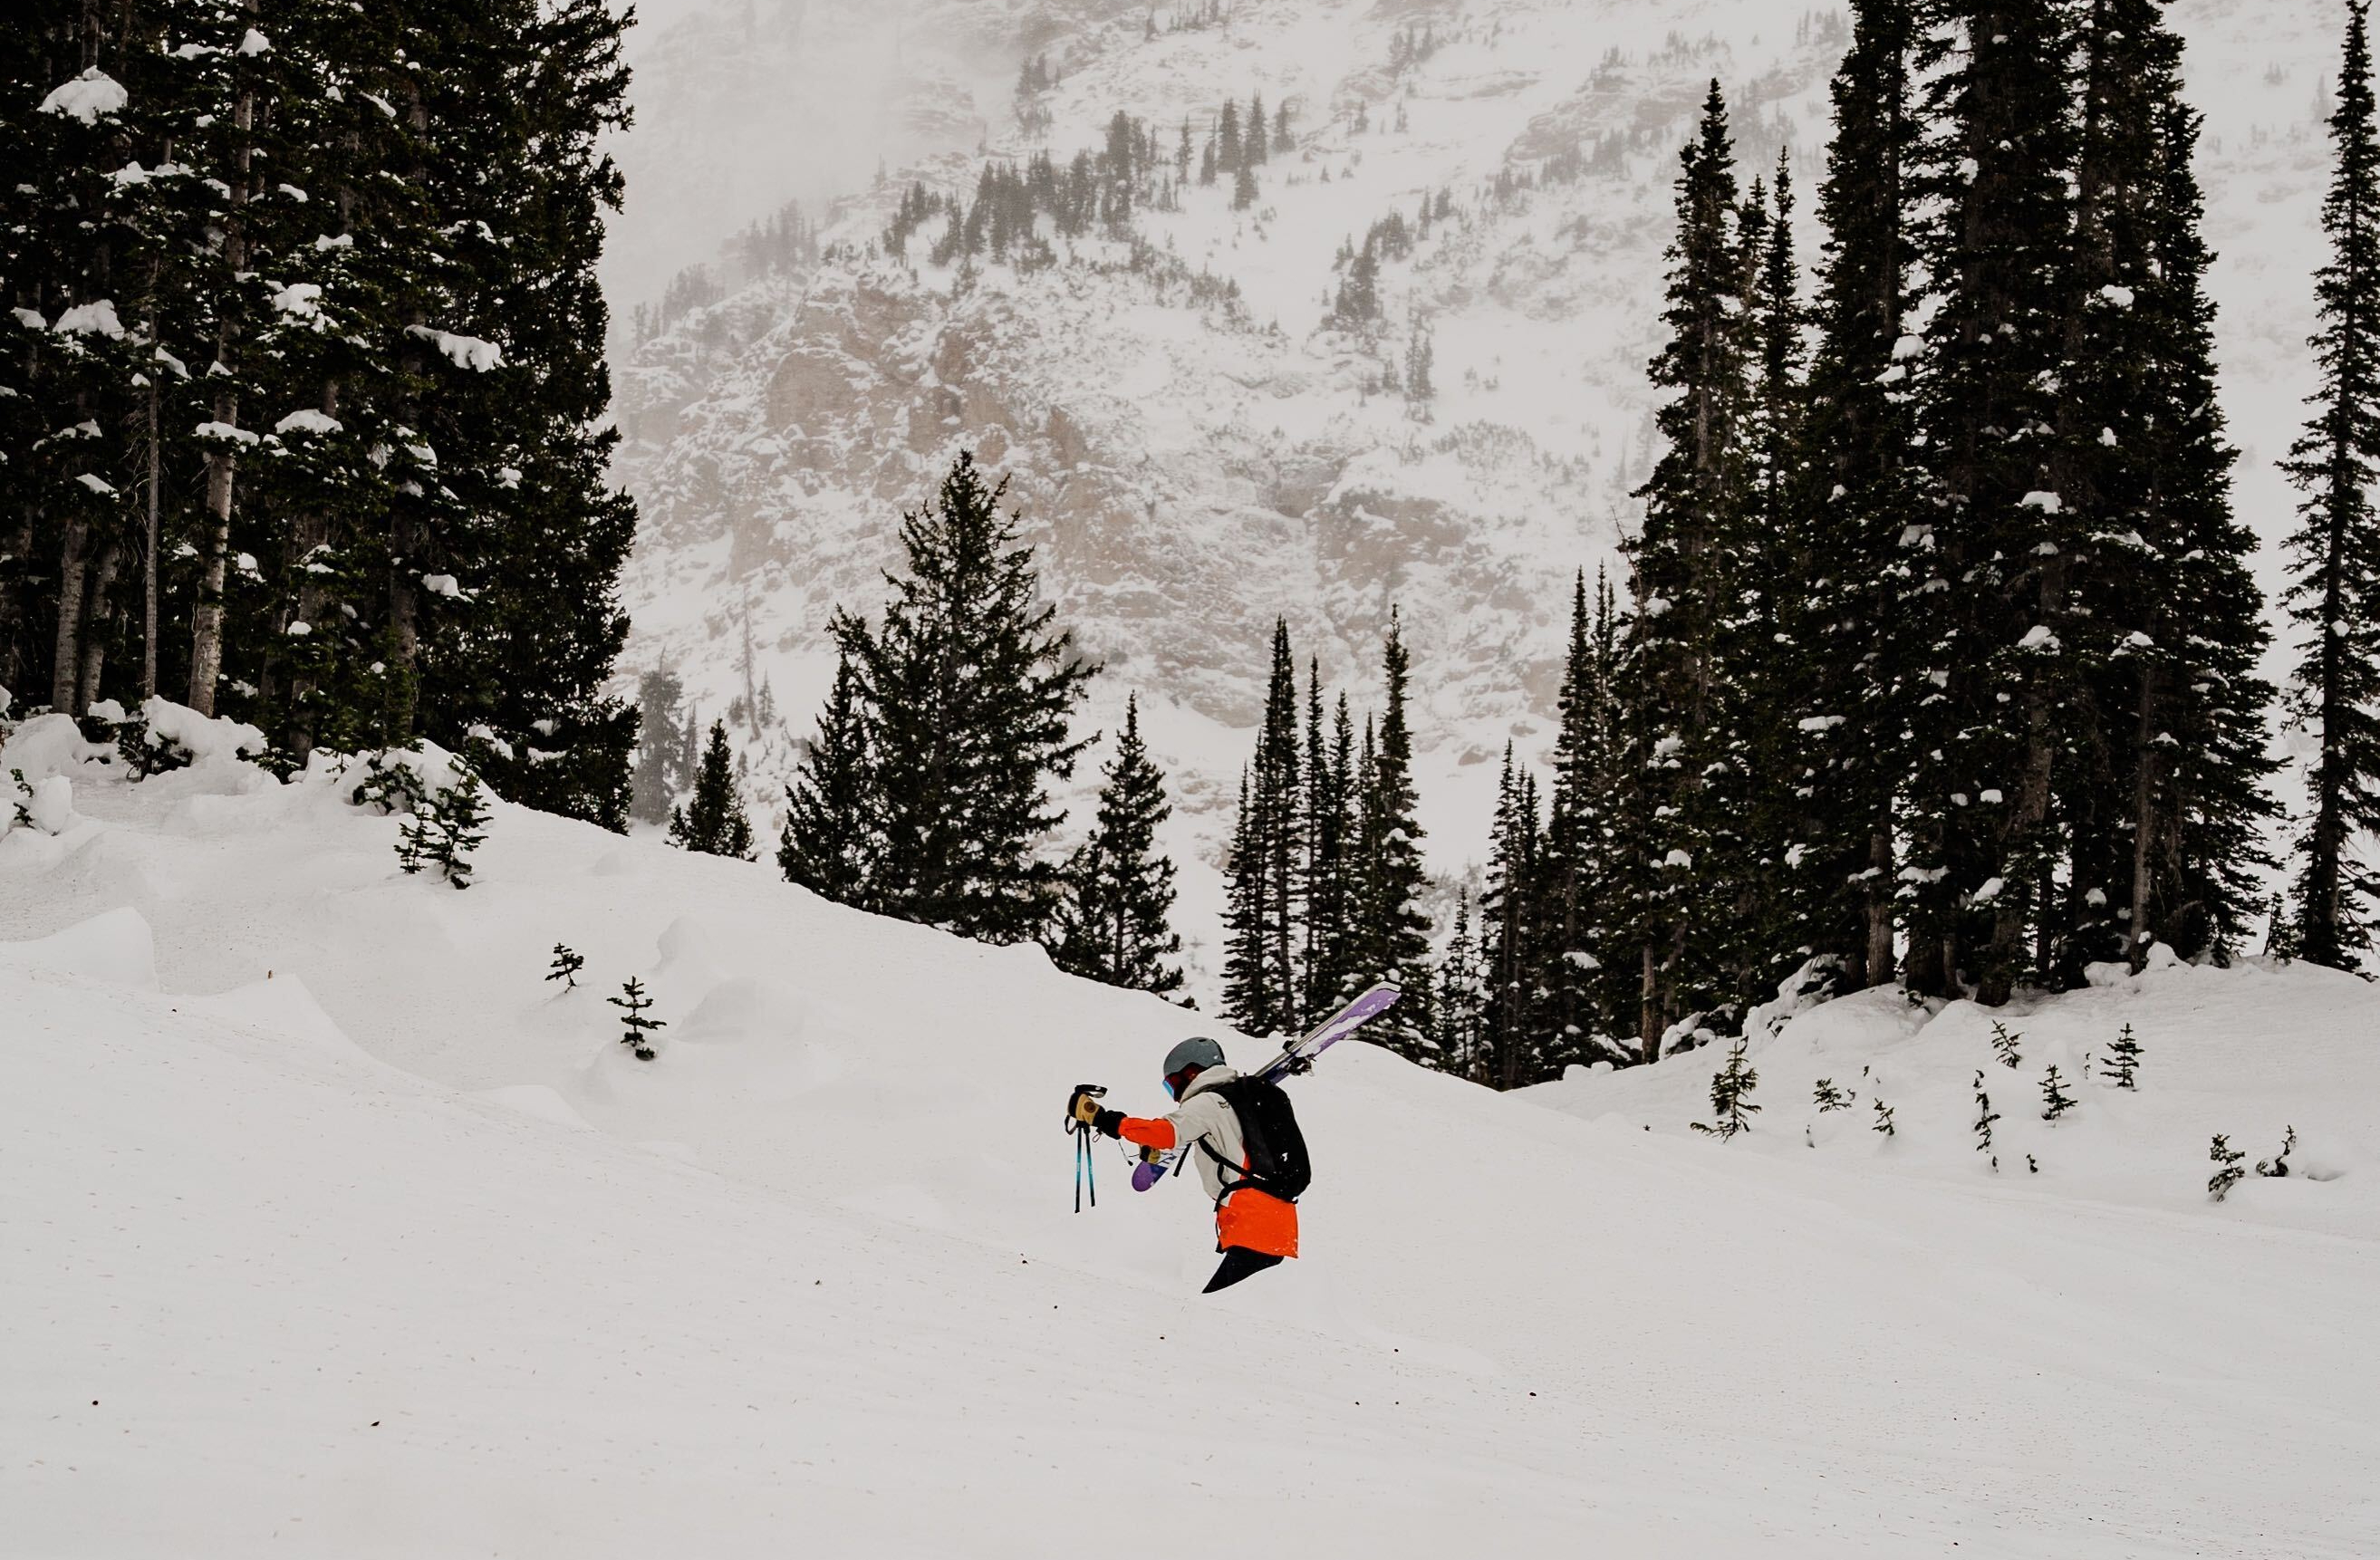 pre season skiing at alta, utah